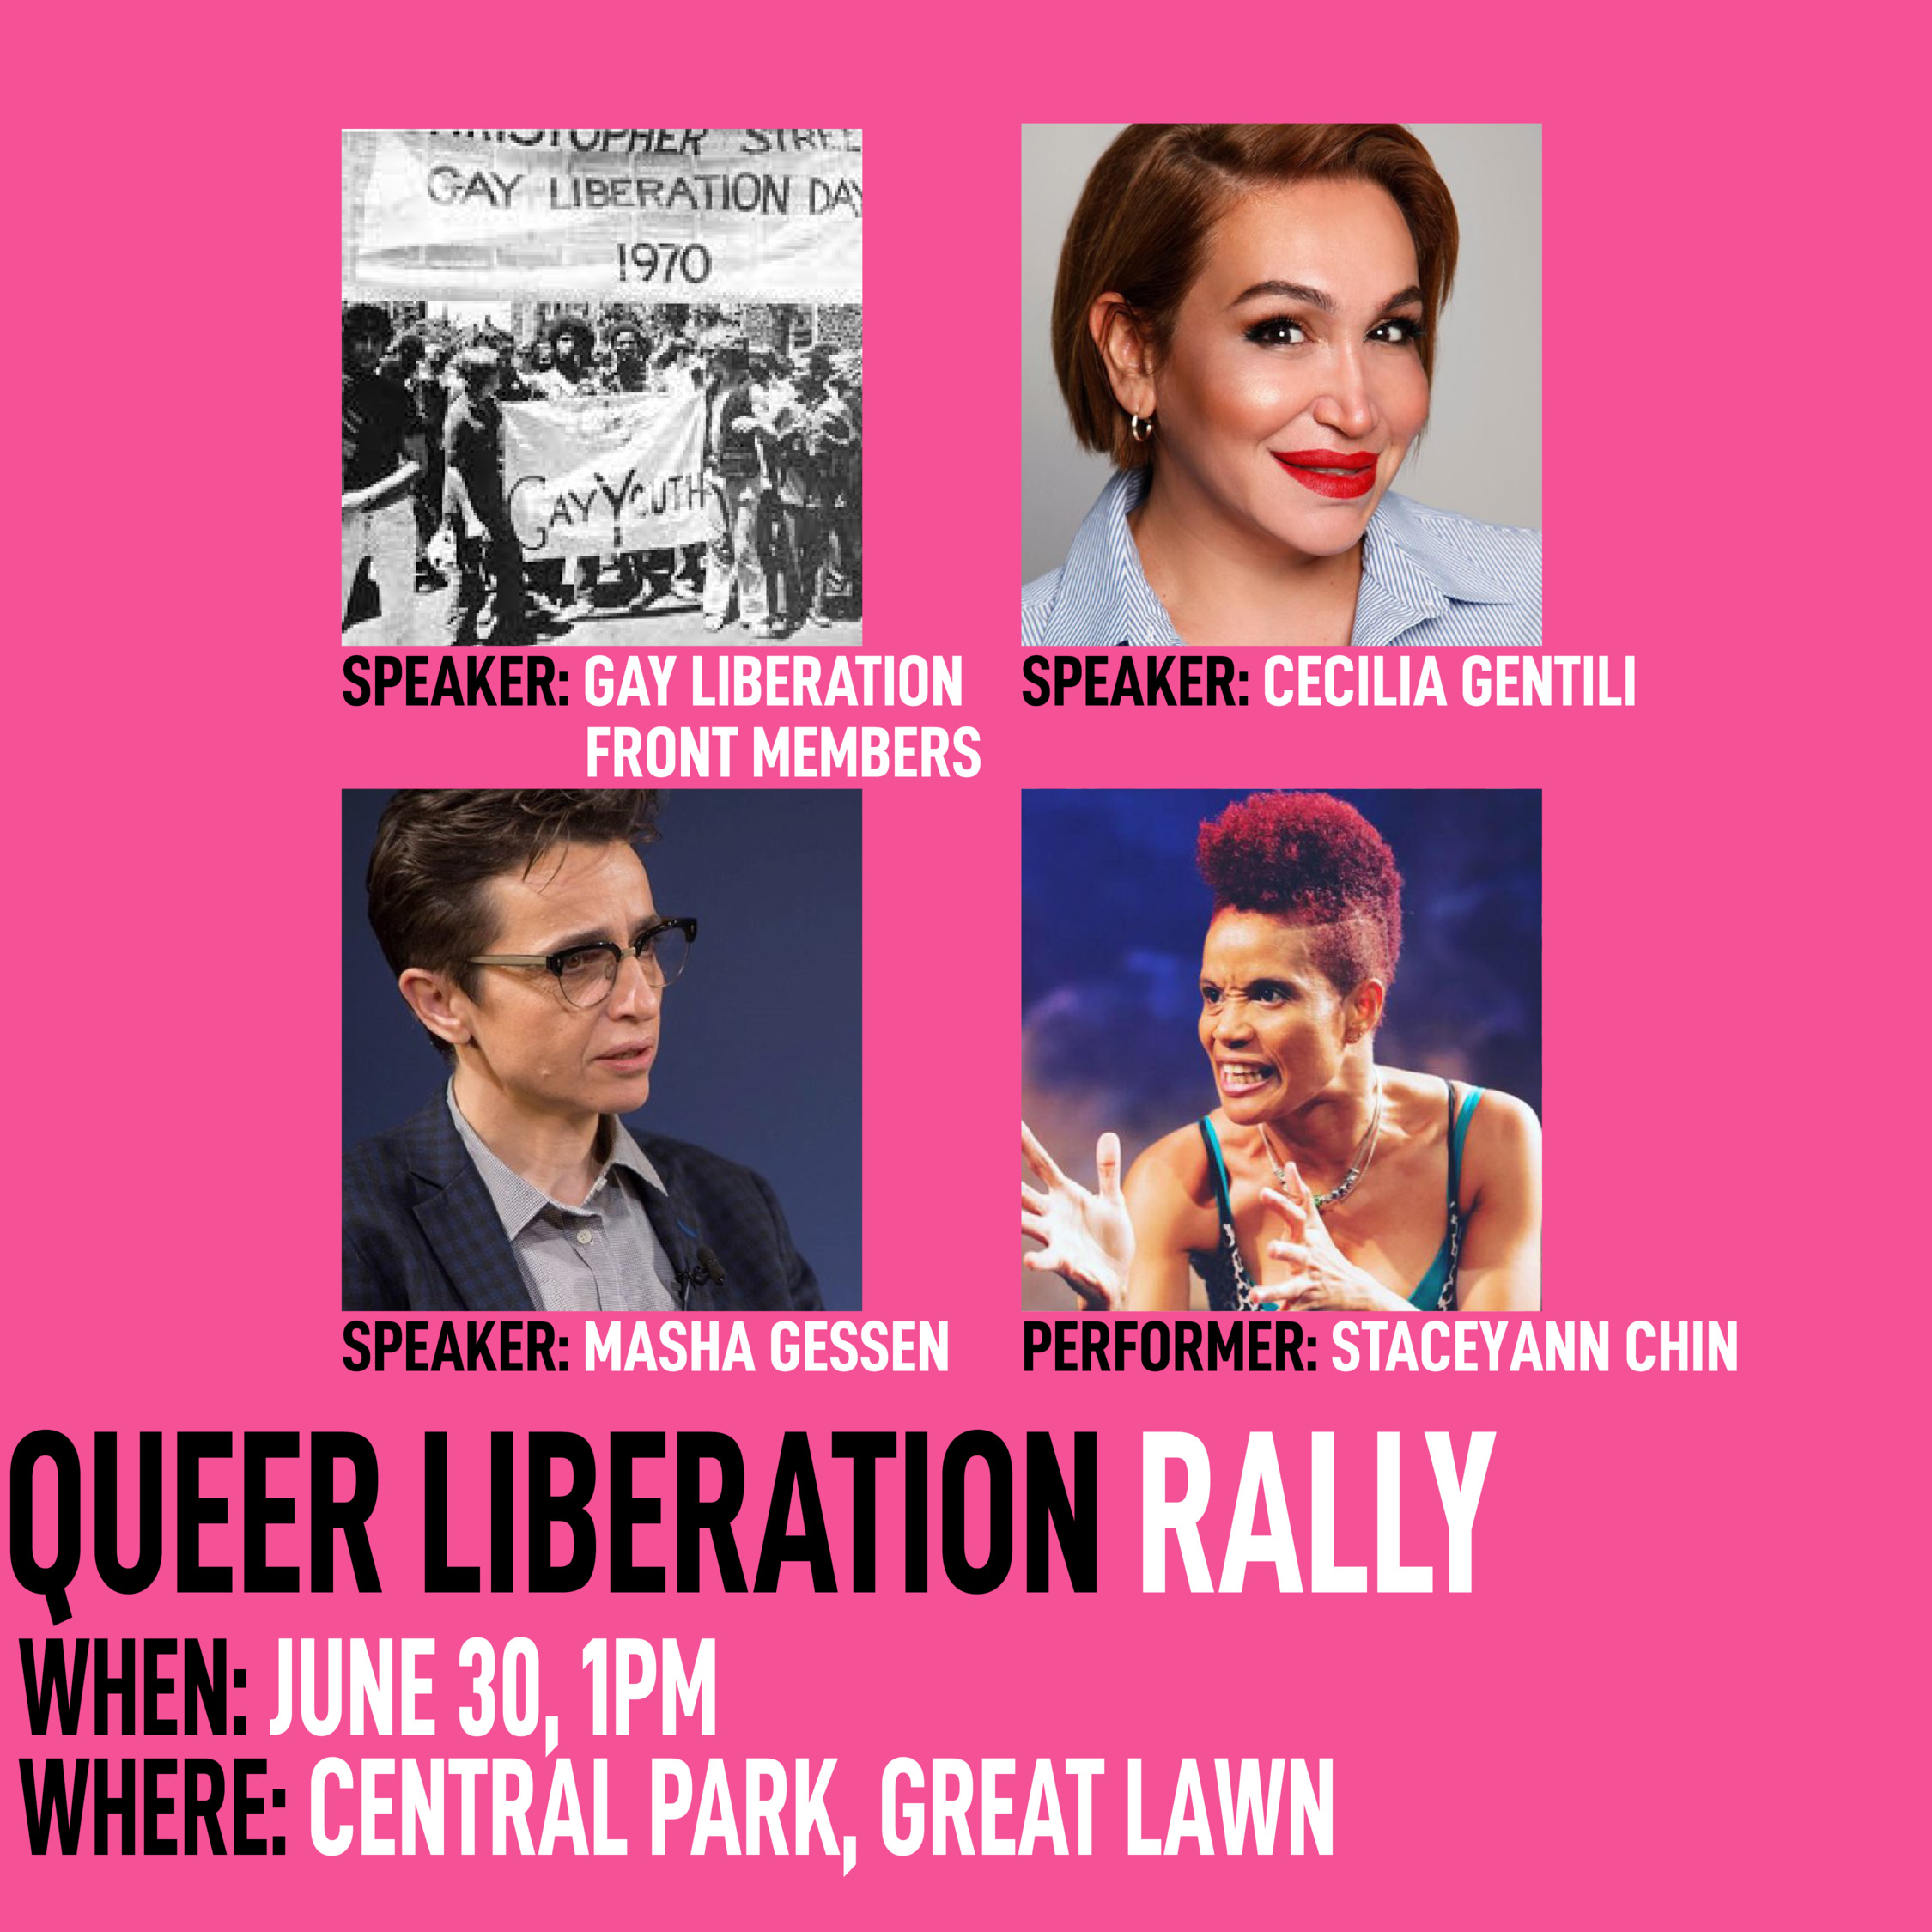 [RPC] Queer Liberation Rally Speakers 4 Square3.jpg